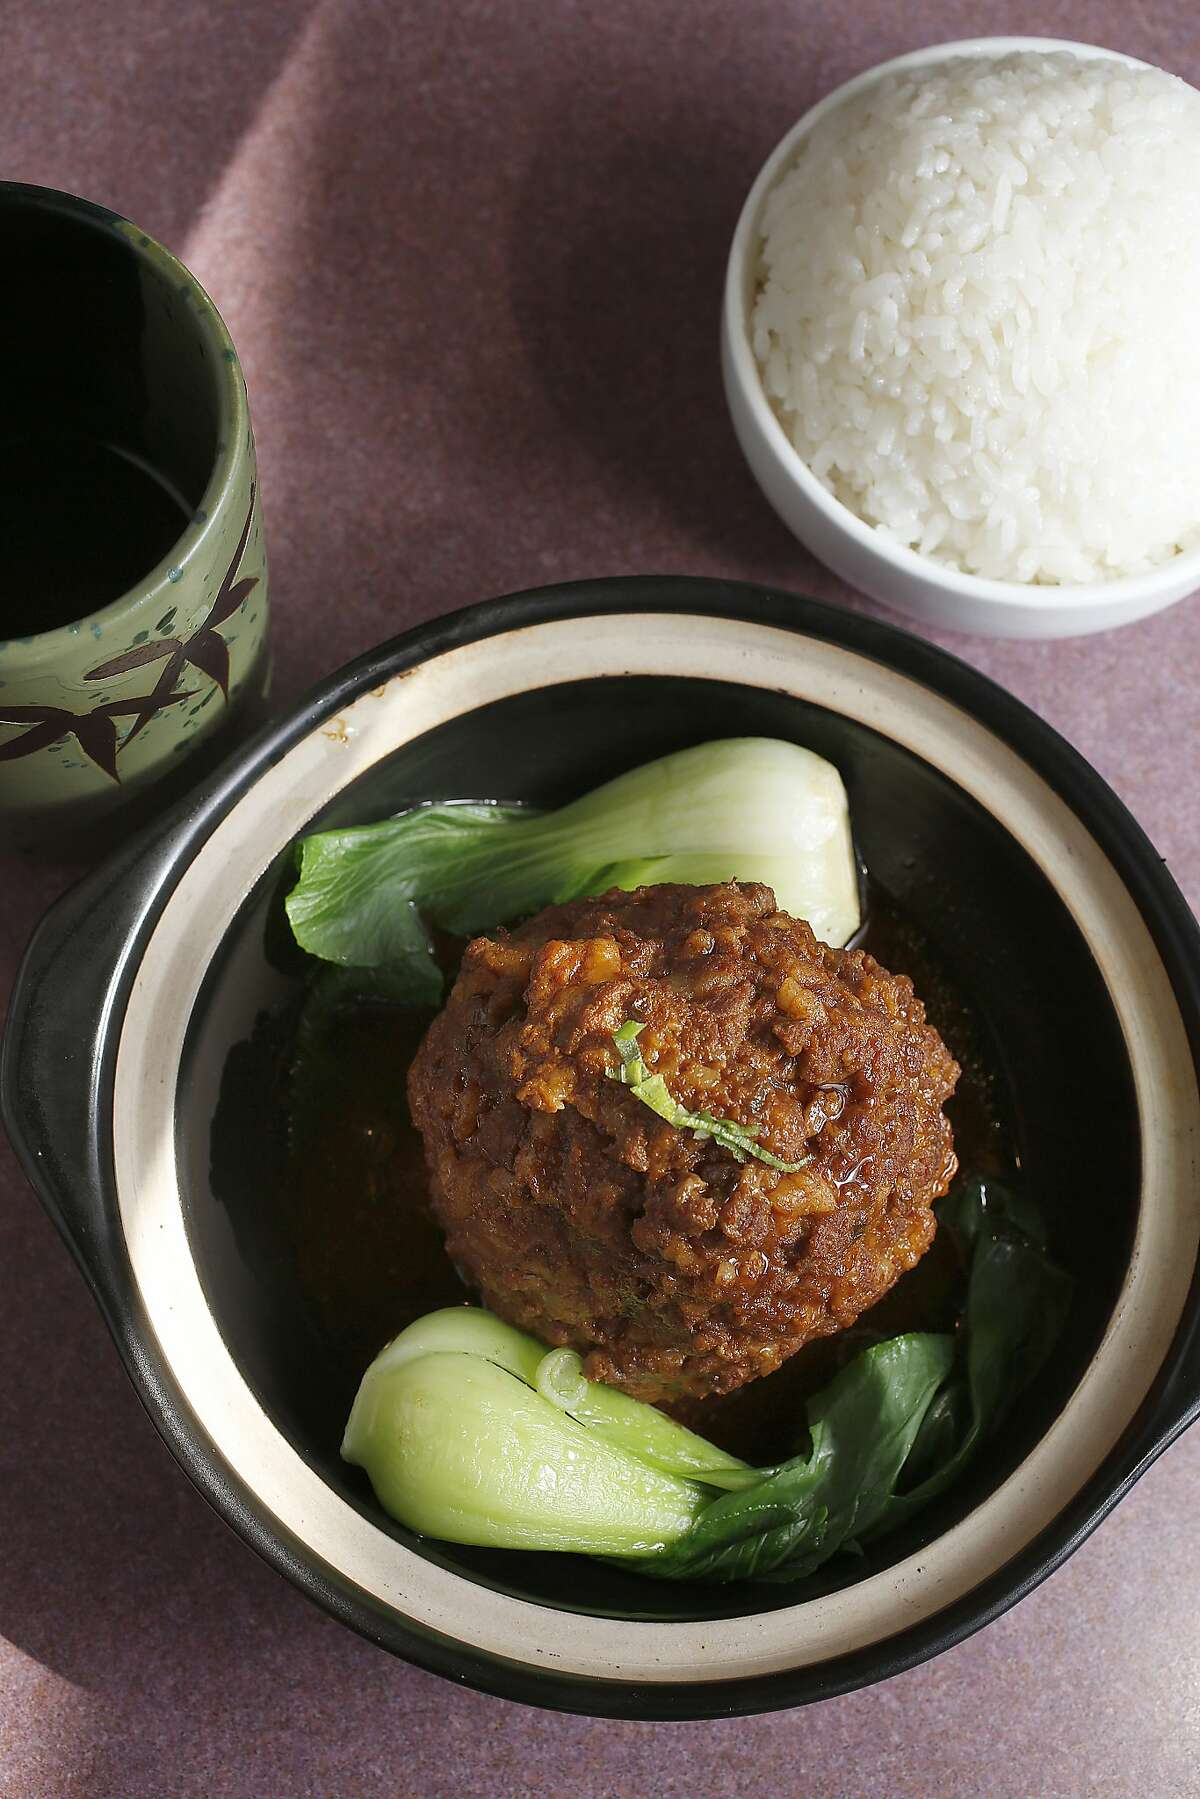 Homemade meatball at Jiangnan Cuisine on Friday, October 6, 2017, in San Francisco, Calif.